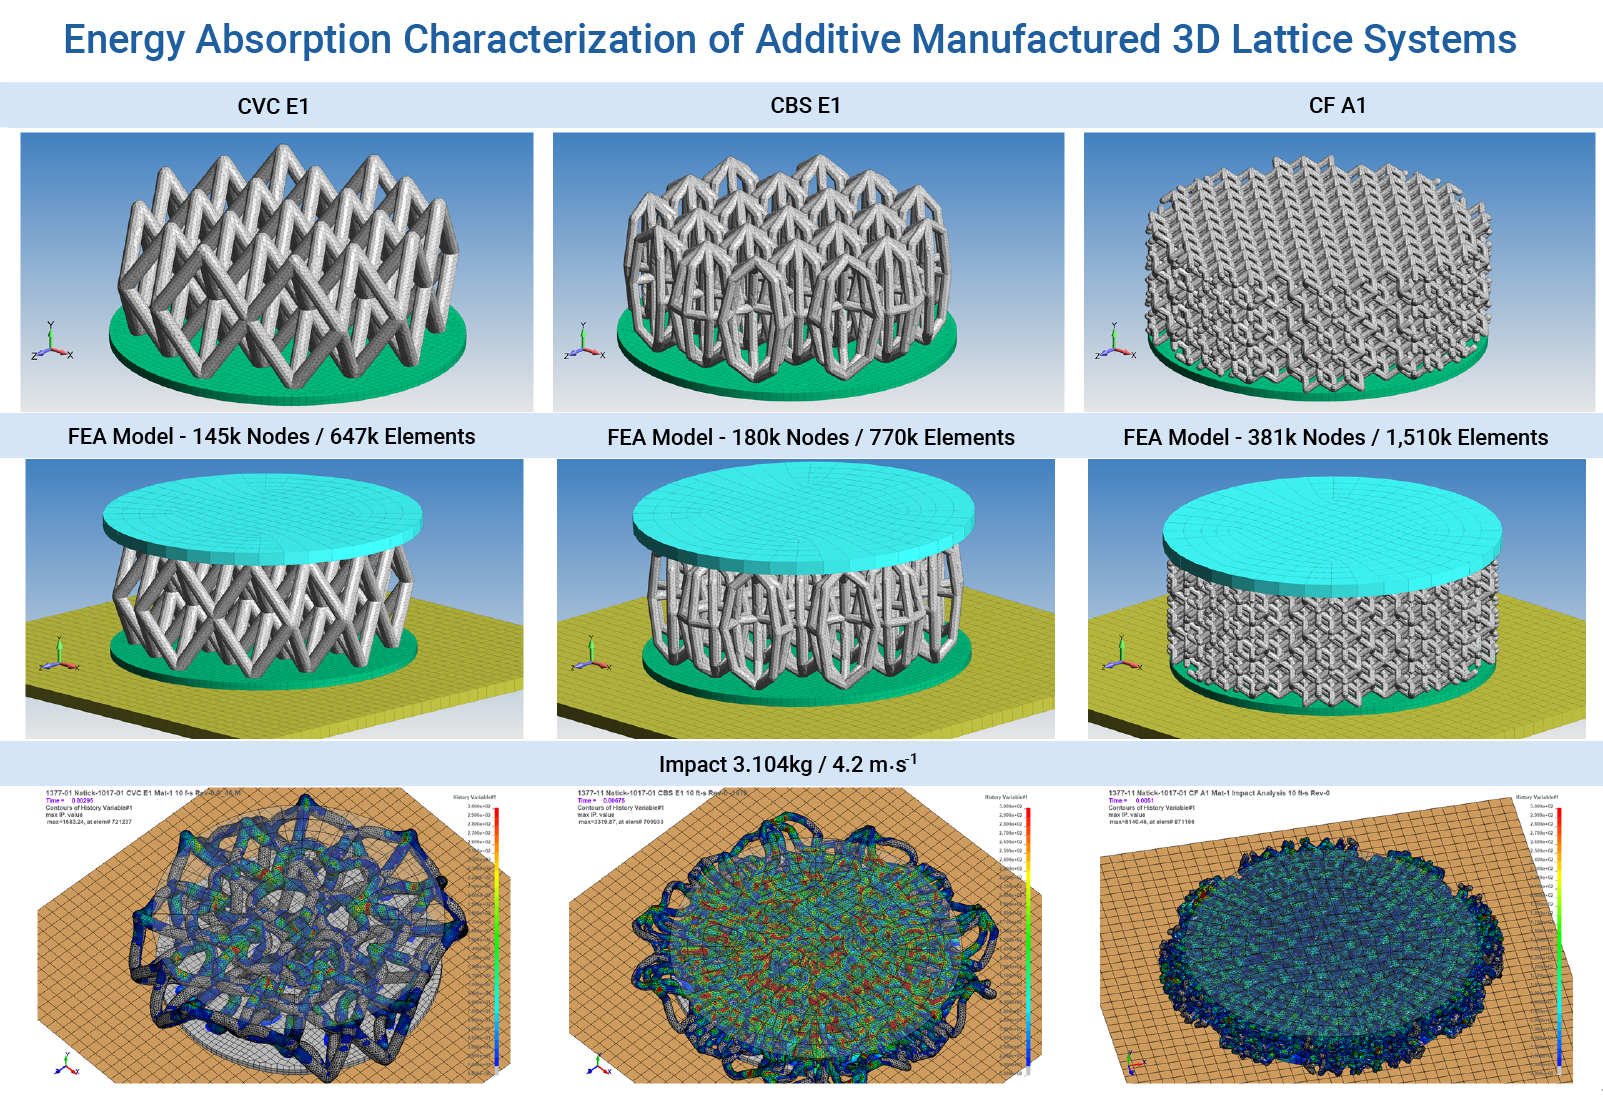 FEA LS-DYNA Nonlinear Energy Absorption Characterization of Additive Manufactured 3D Lattice Systems